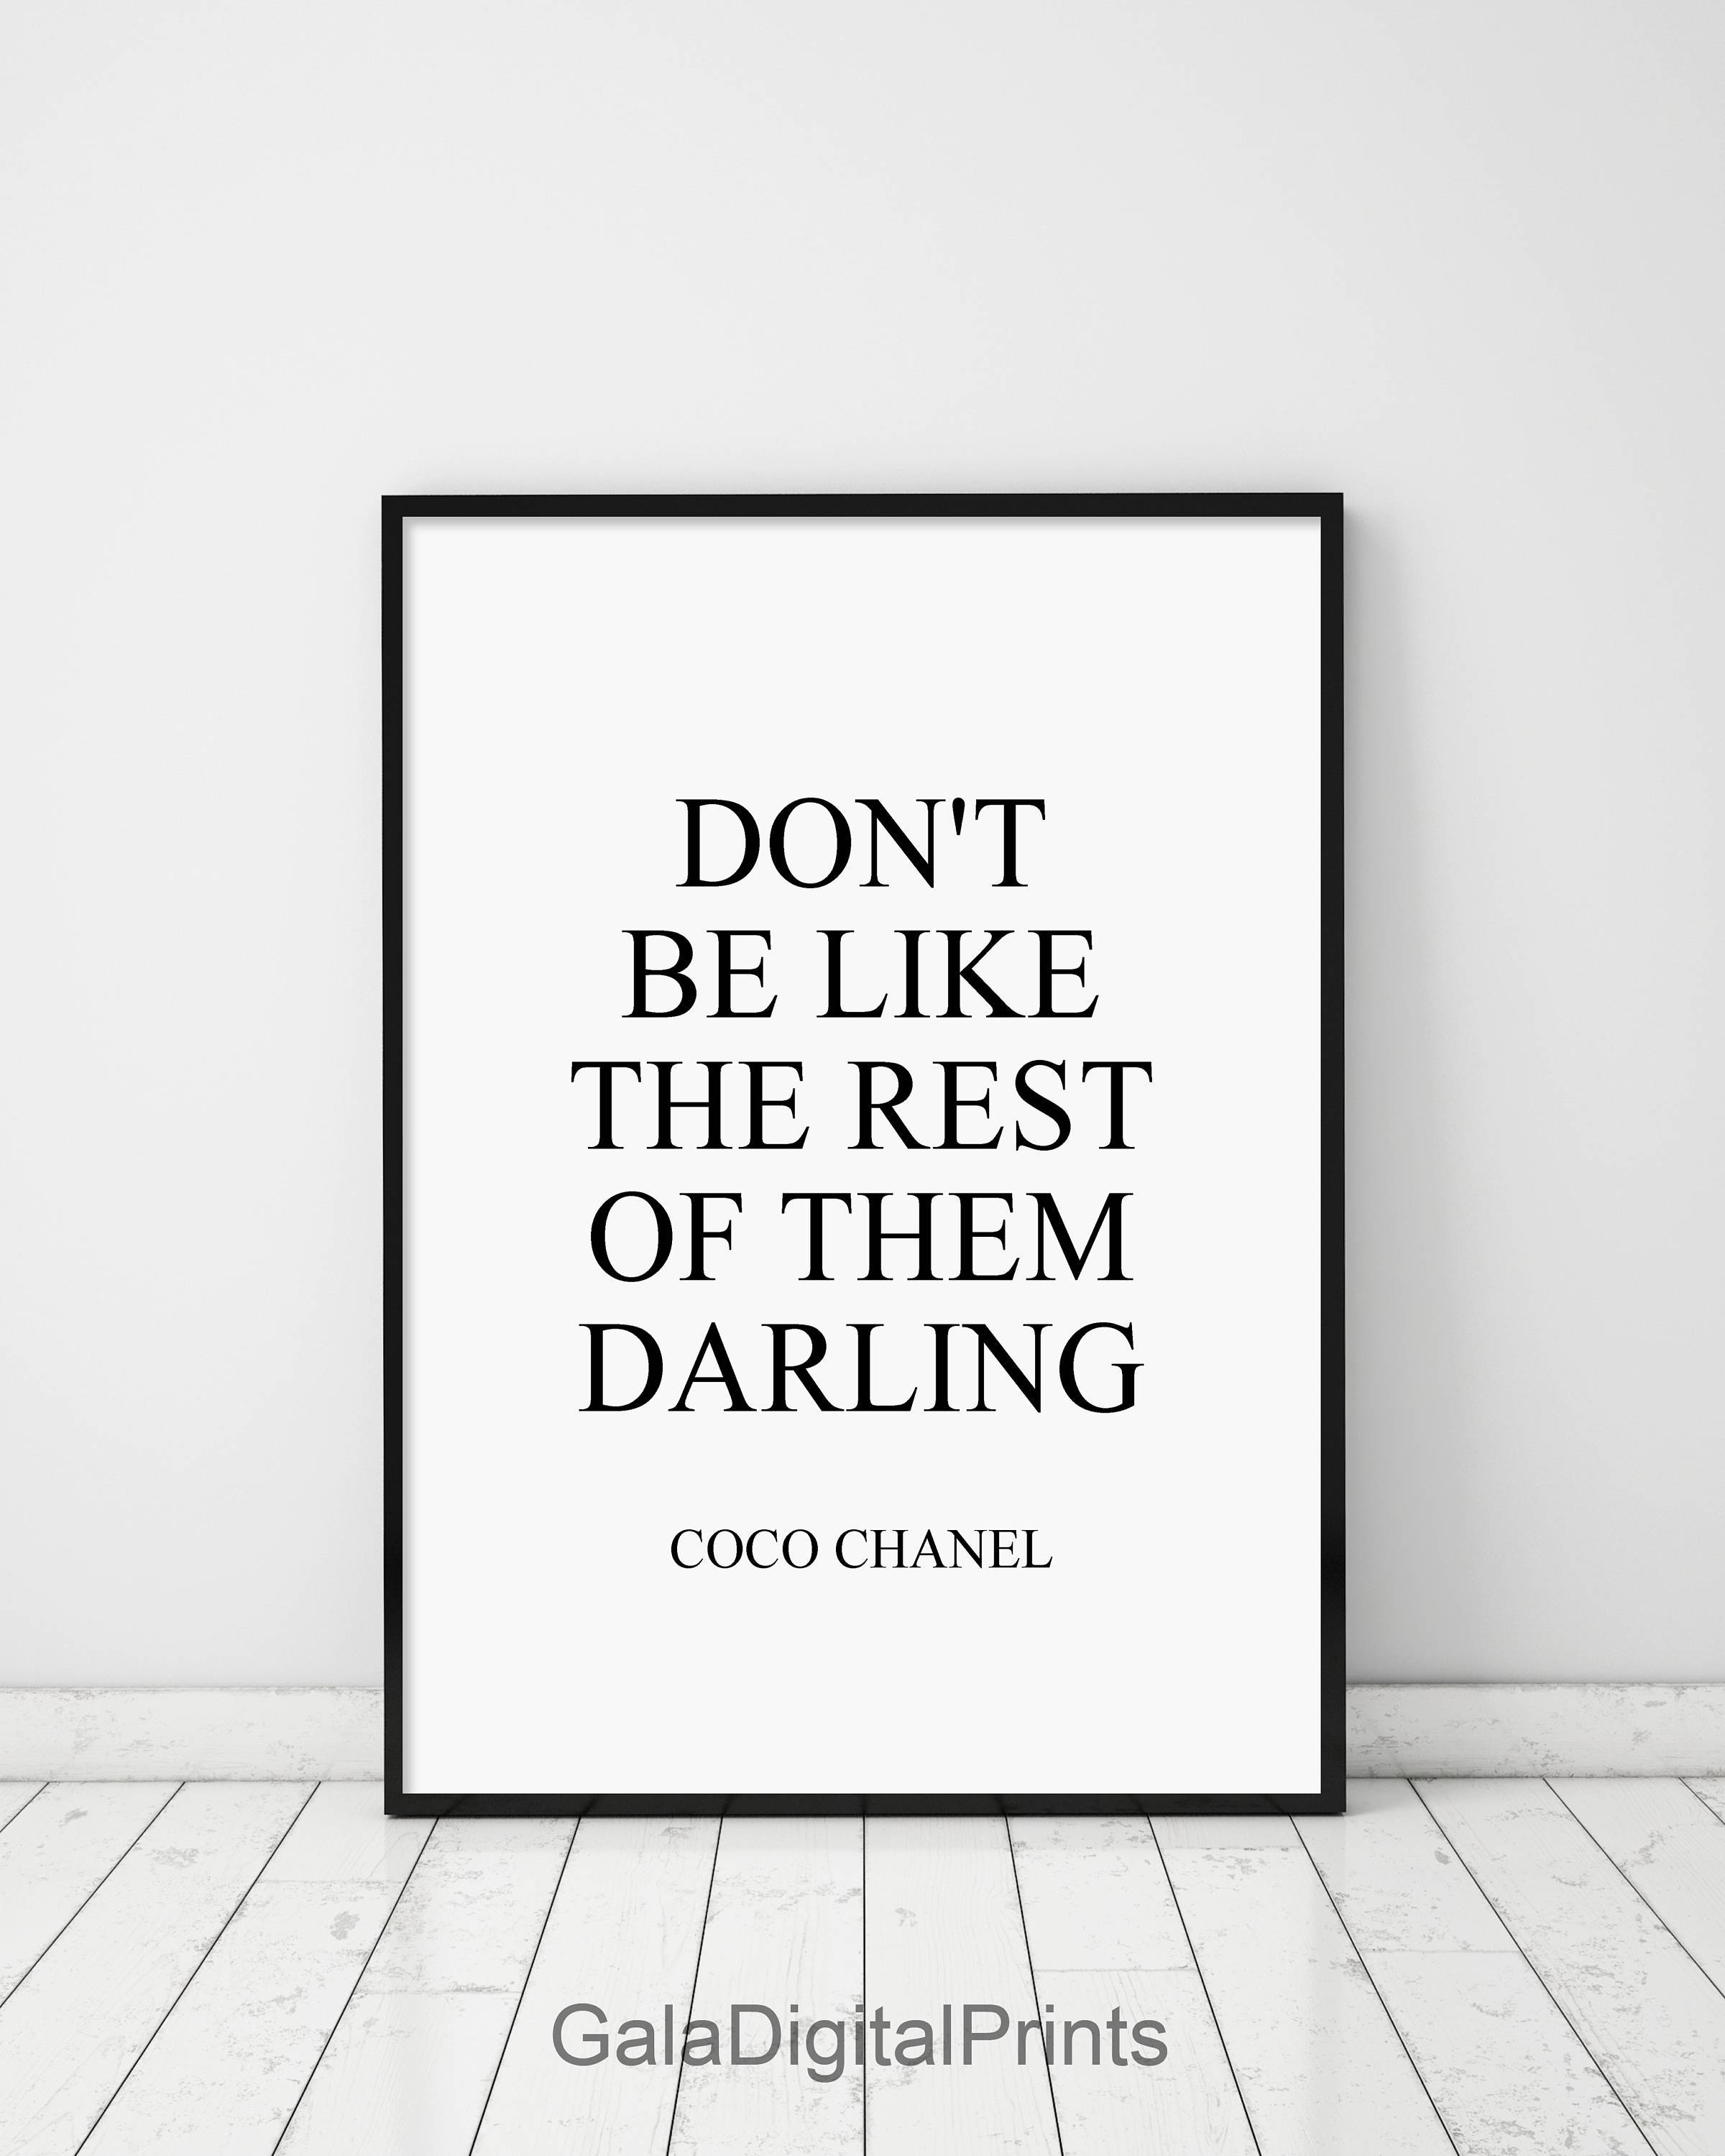 sprüche von coco chanel englisch Photos of Coco Chanel Quotes Framed Wall Art (Showing 19 of 30 Photos) sprüche von coco chanel englisch